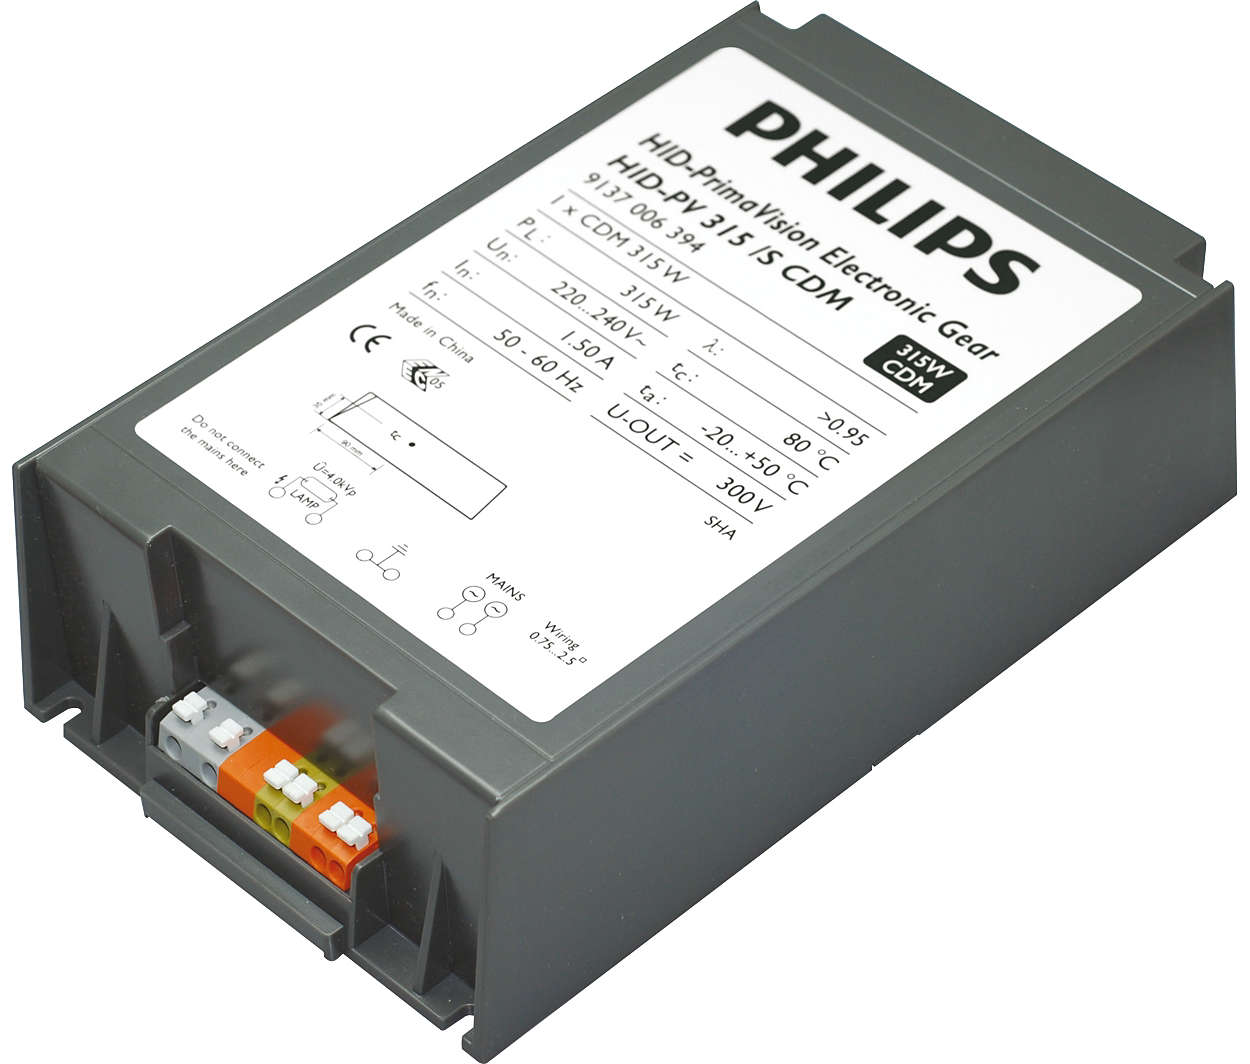 HID-PrimaVision (Xtreme) for CDM Elite MW - Xtreme drivers for the highest reliability